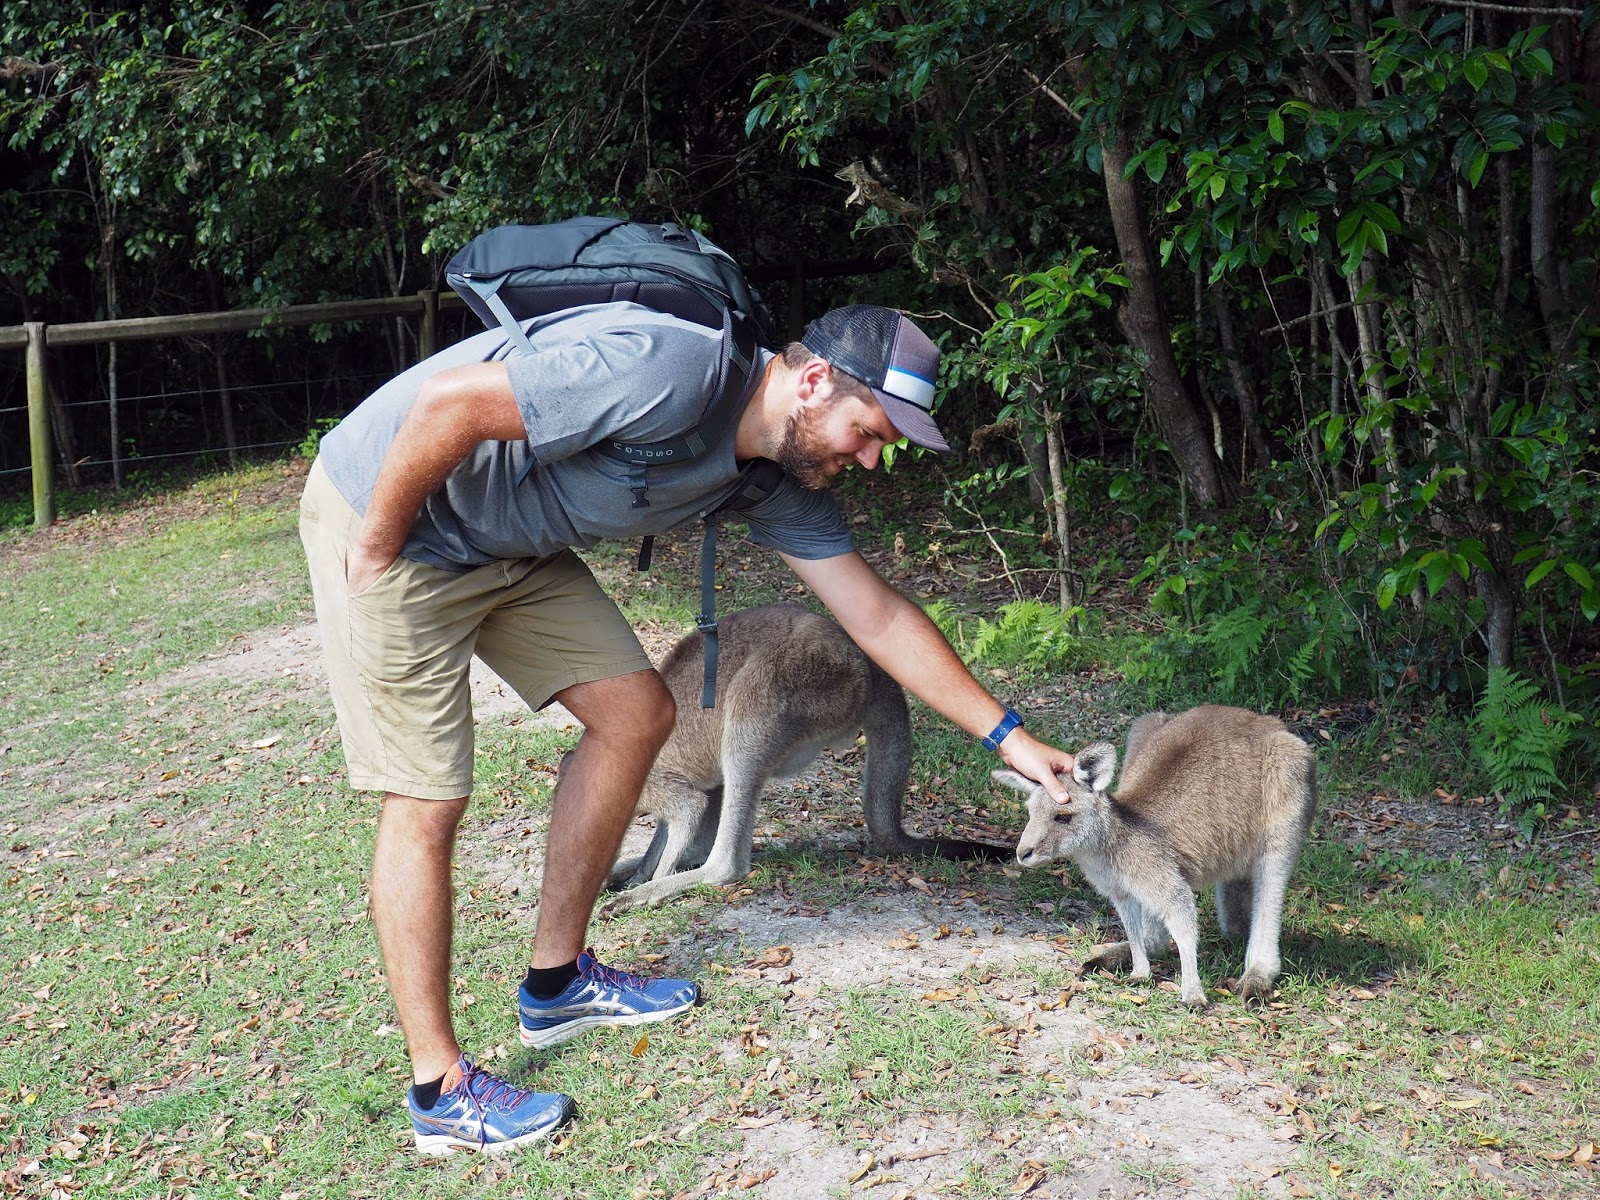 Dan with Kangaroos at Diamond Head Campground